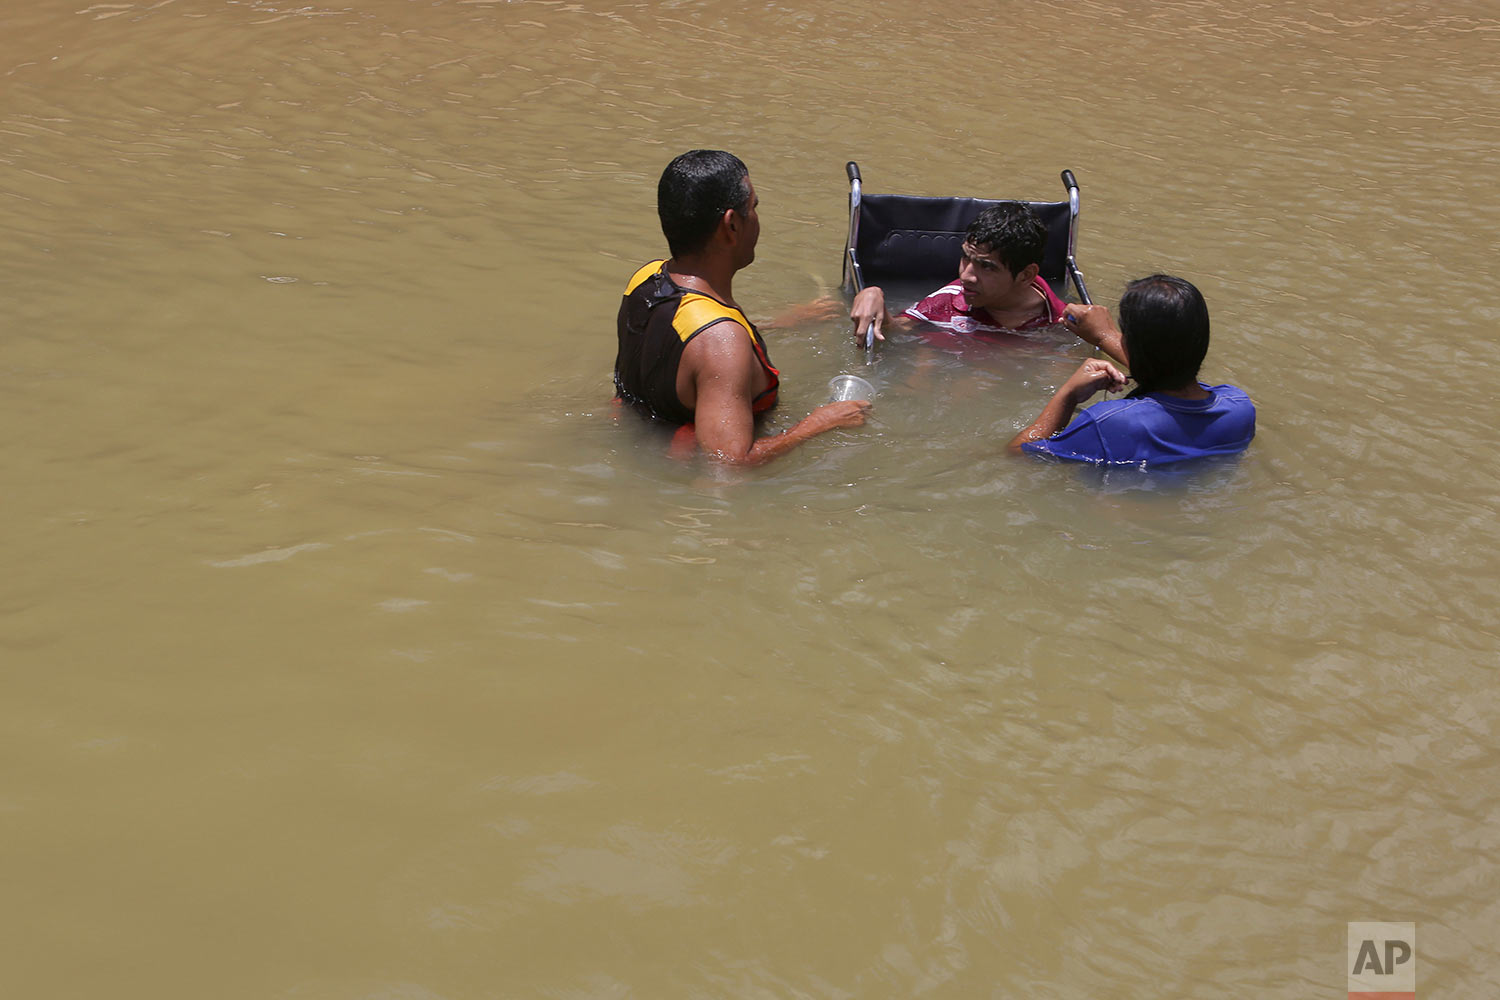 In this March 11, 2018 photo, a Venezuelan family, one in a wheelchair, cool off and bathe in the Branco River in Boa Vista, Roraima state, Brazil. (AP Photo/Eraldo Peres)